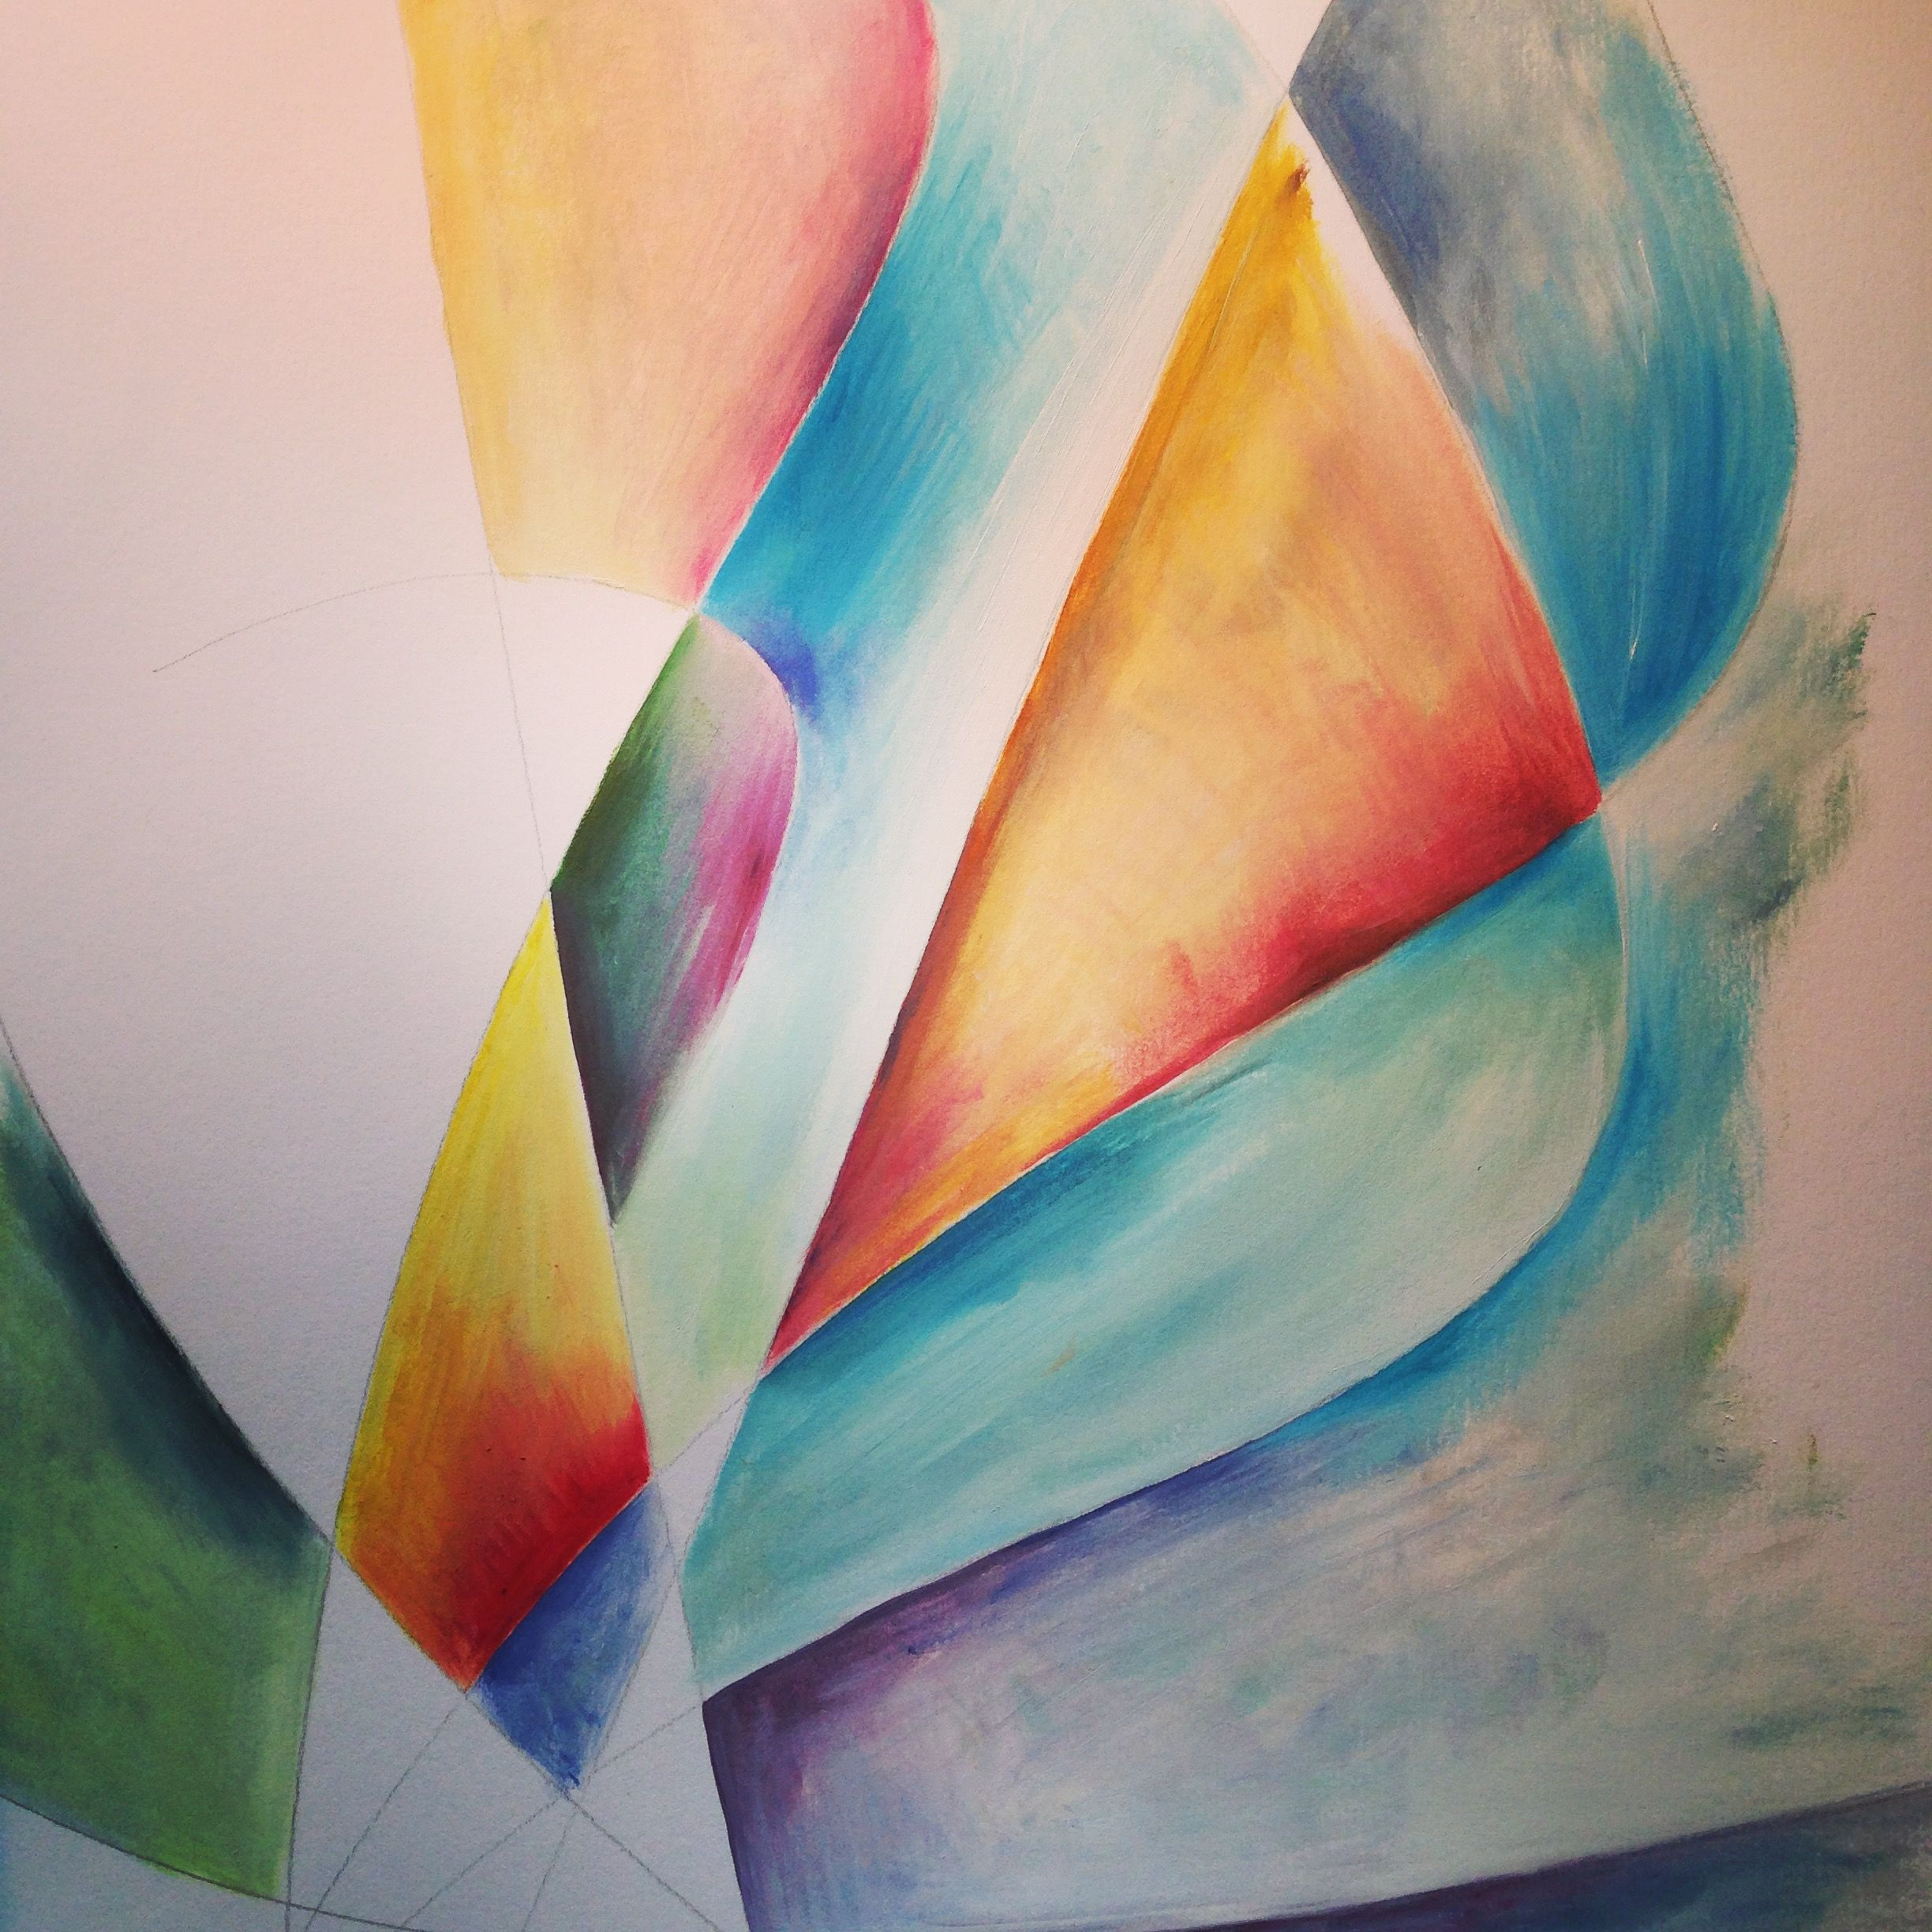 Sails - abstract idea of the movement of the boats - Cate Field - oil paint